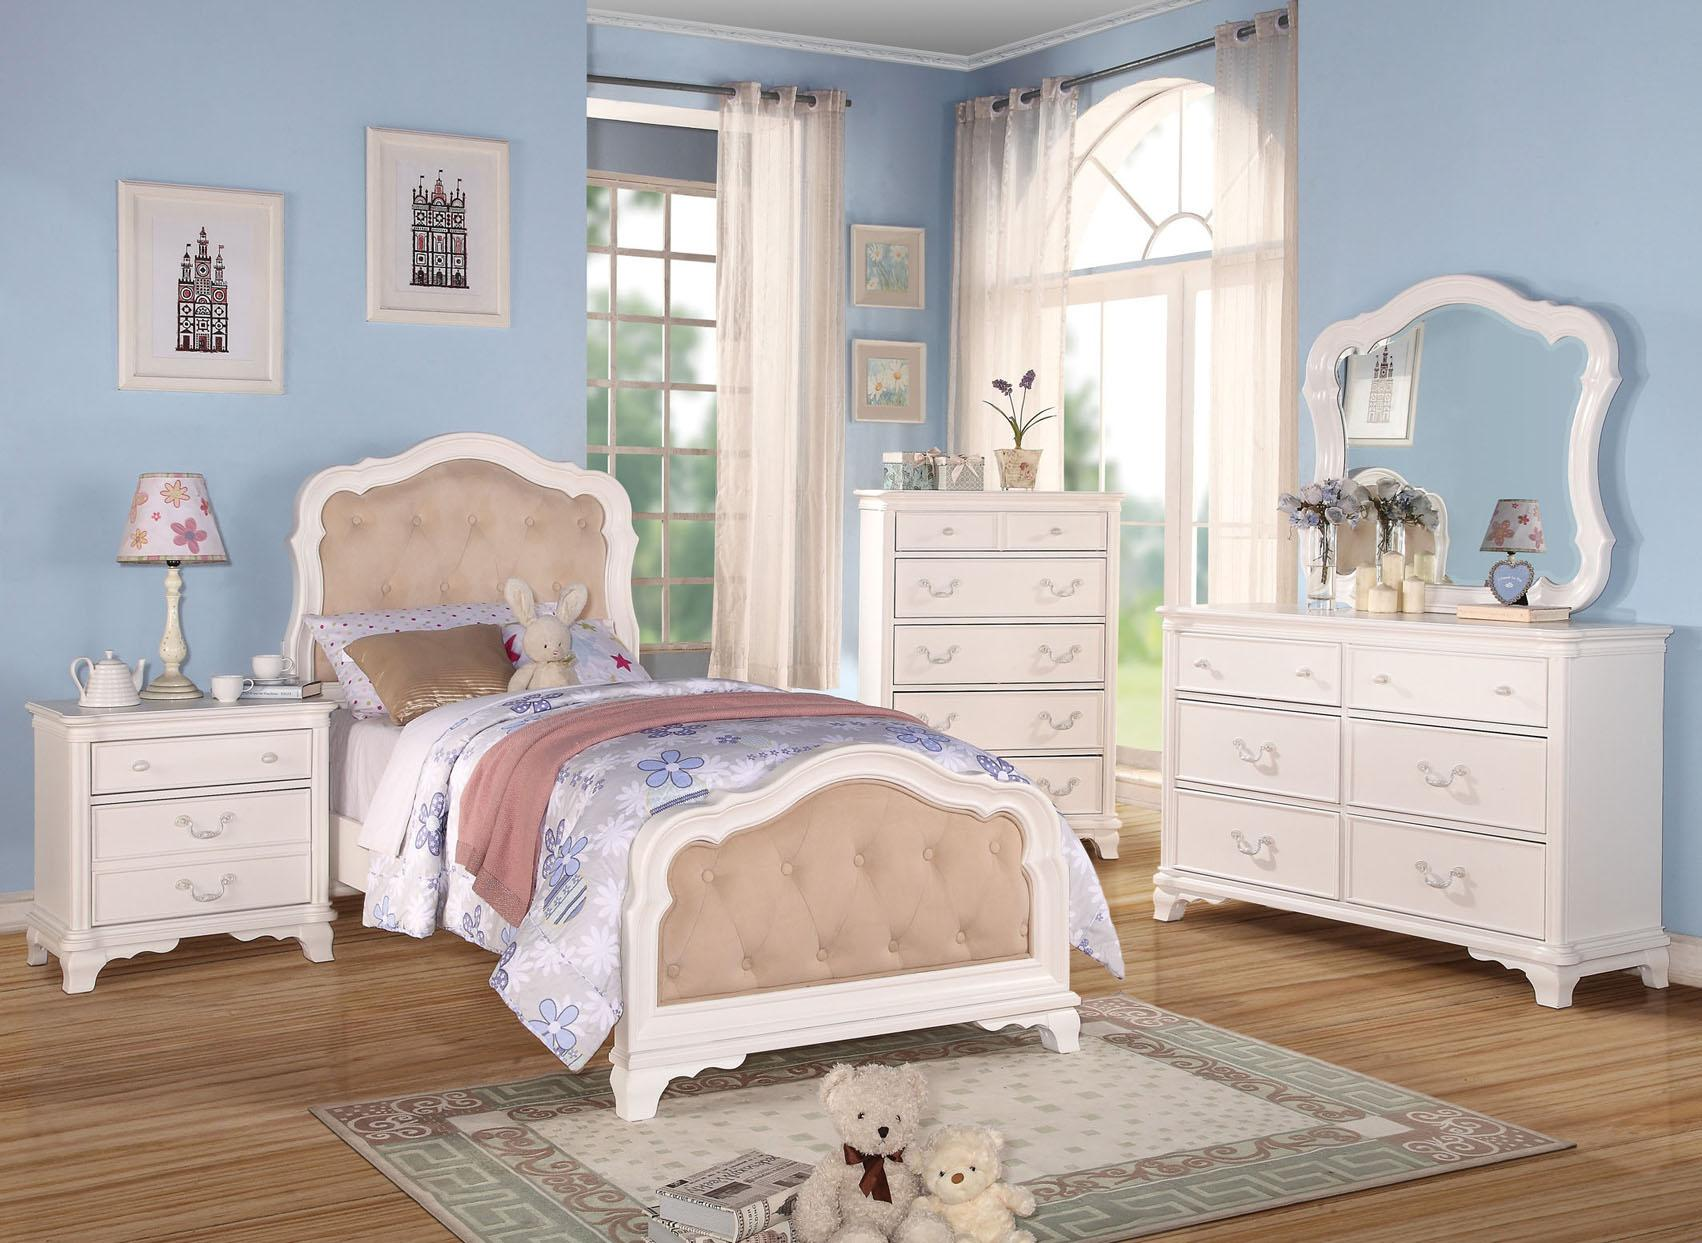 Acme Furniture Ira Twin Bedroom Group - Item Number: 3014 Twin Bedroom Group